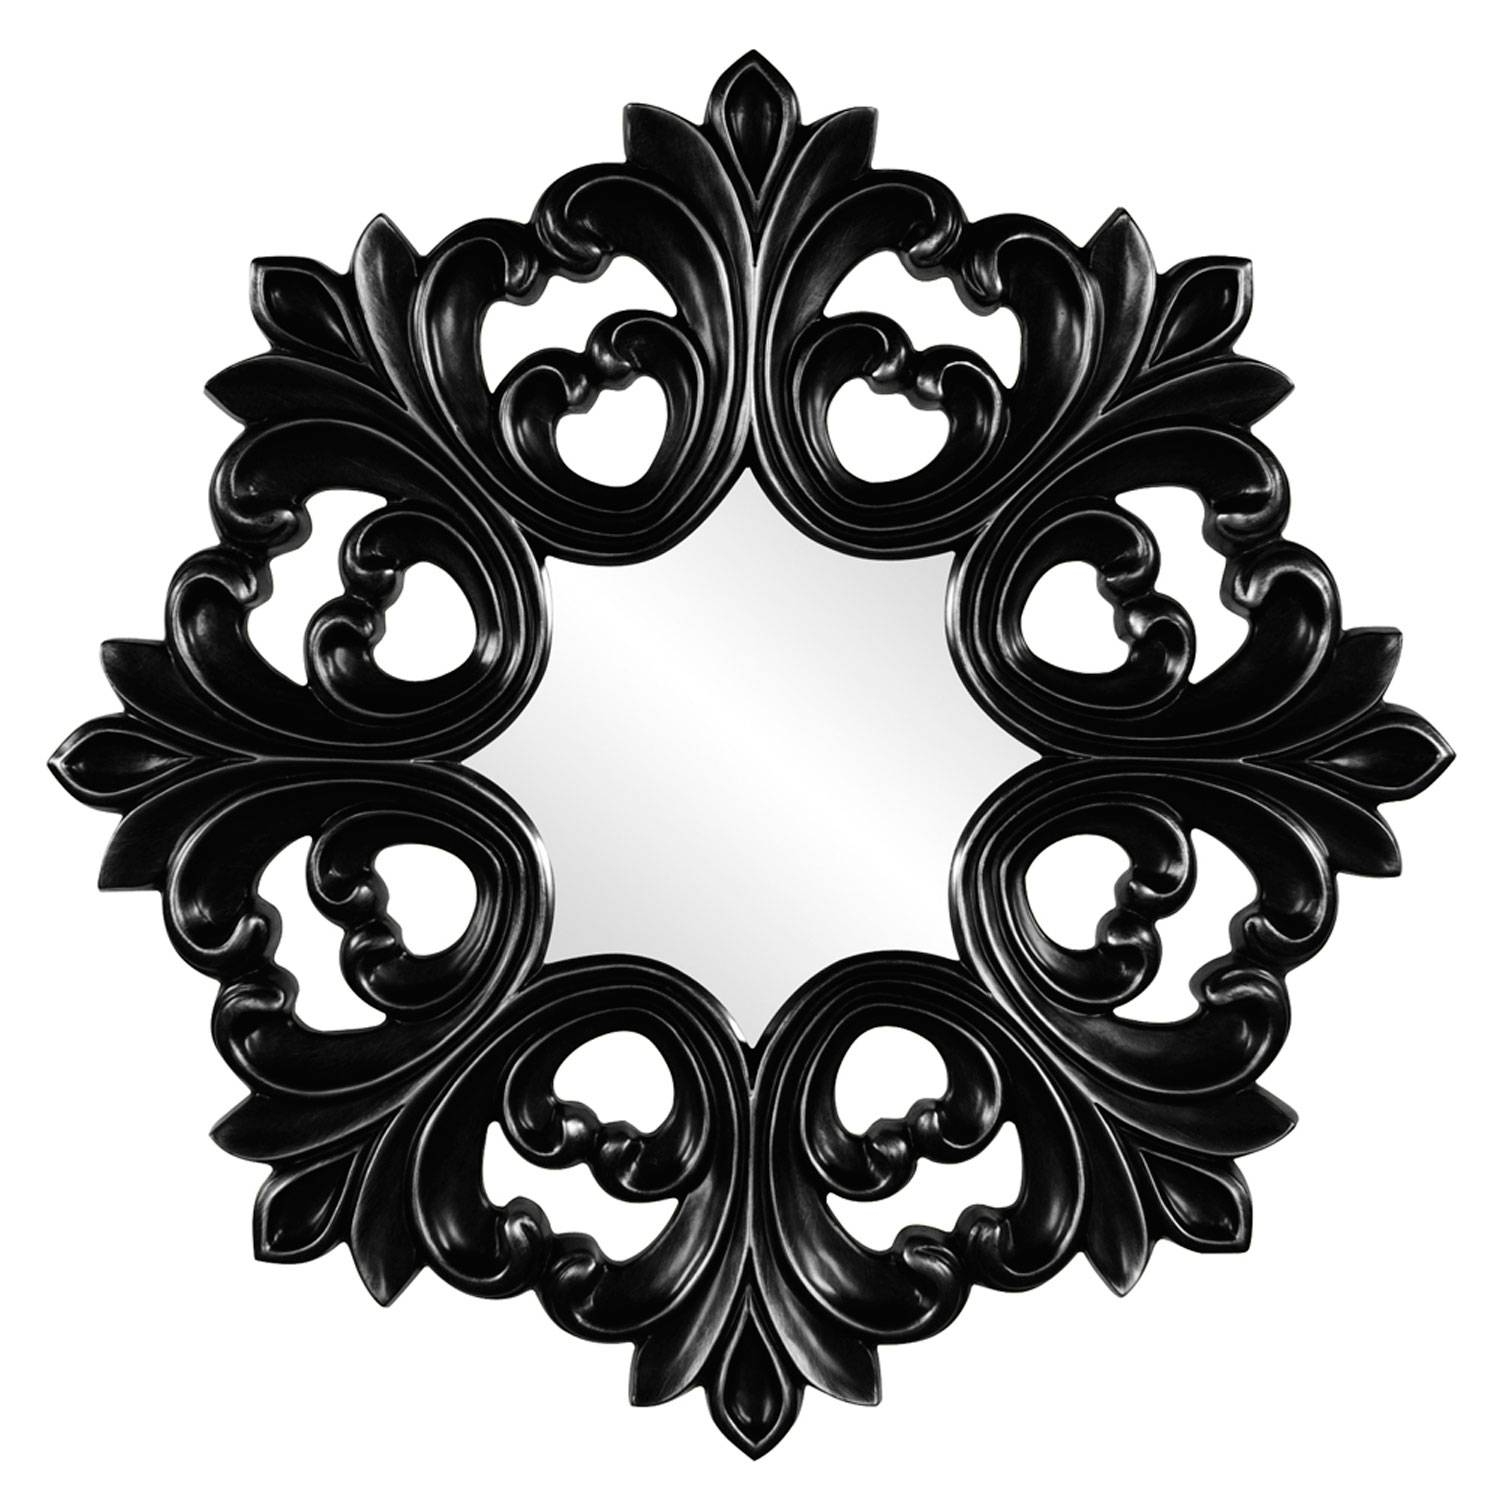 Annabelle Black Round Baroque Mirror Howard Elliott Collection Throughout Black Baroque Mirrors (View 4 of 25)